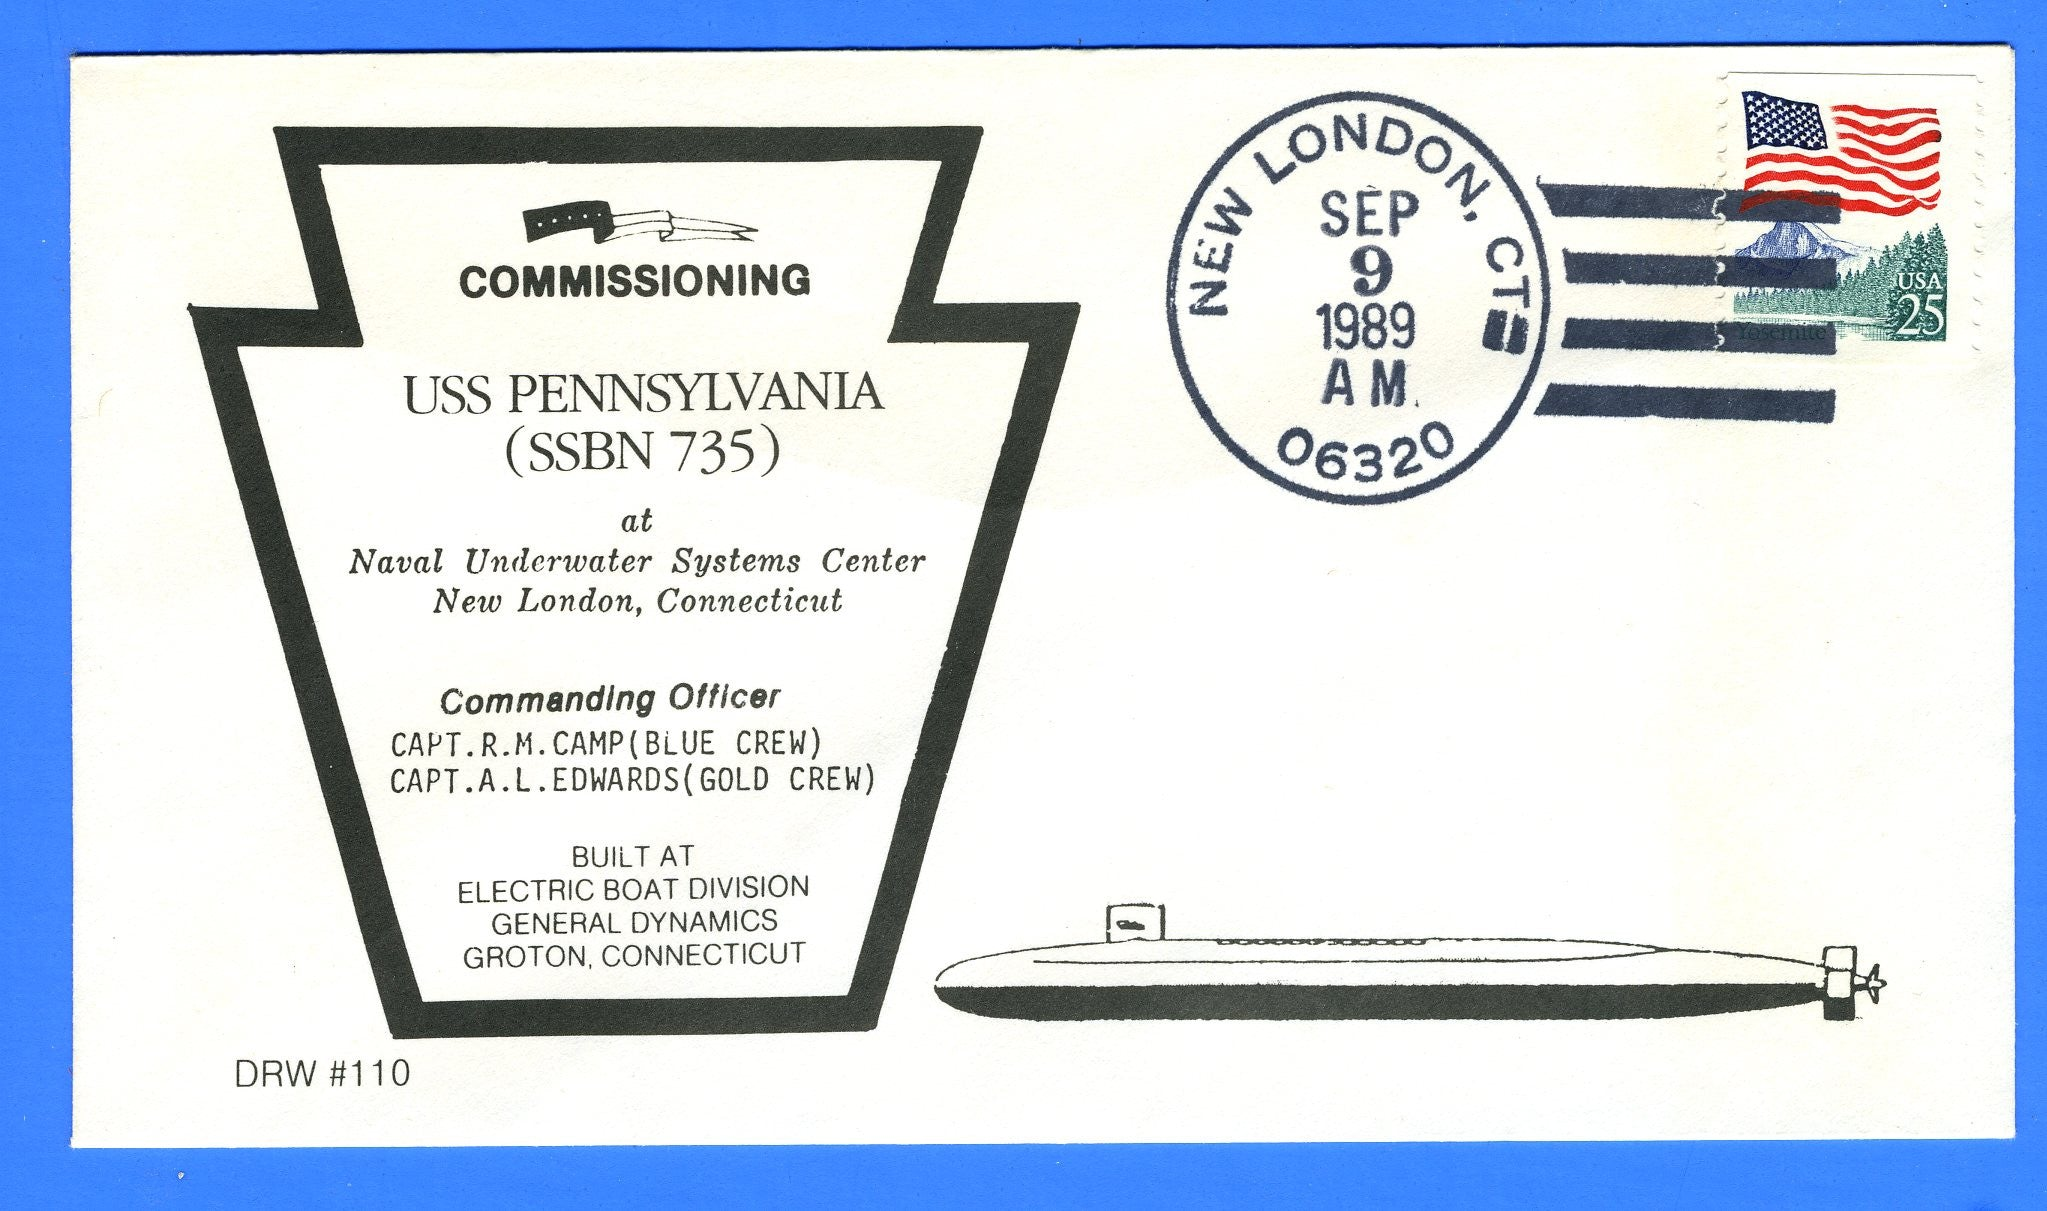 USS Pennsylvania SSBN-735 Commissioned Sep 9, 1989 - DRW 110